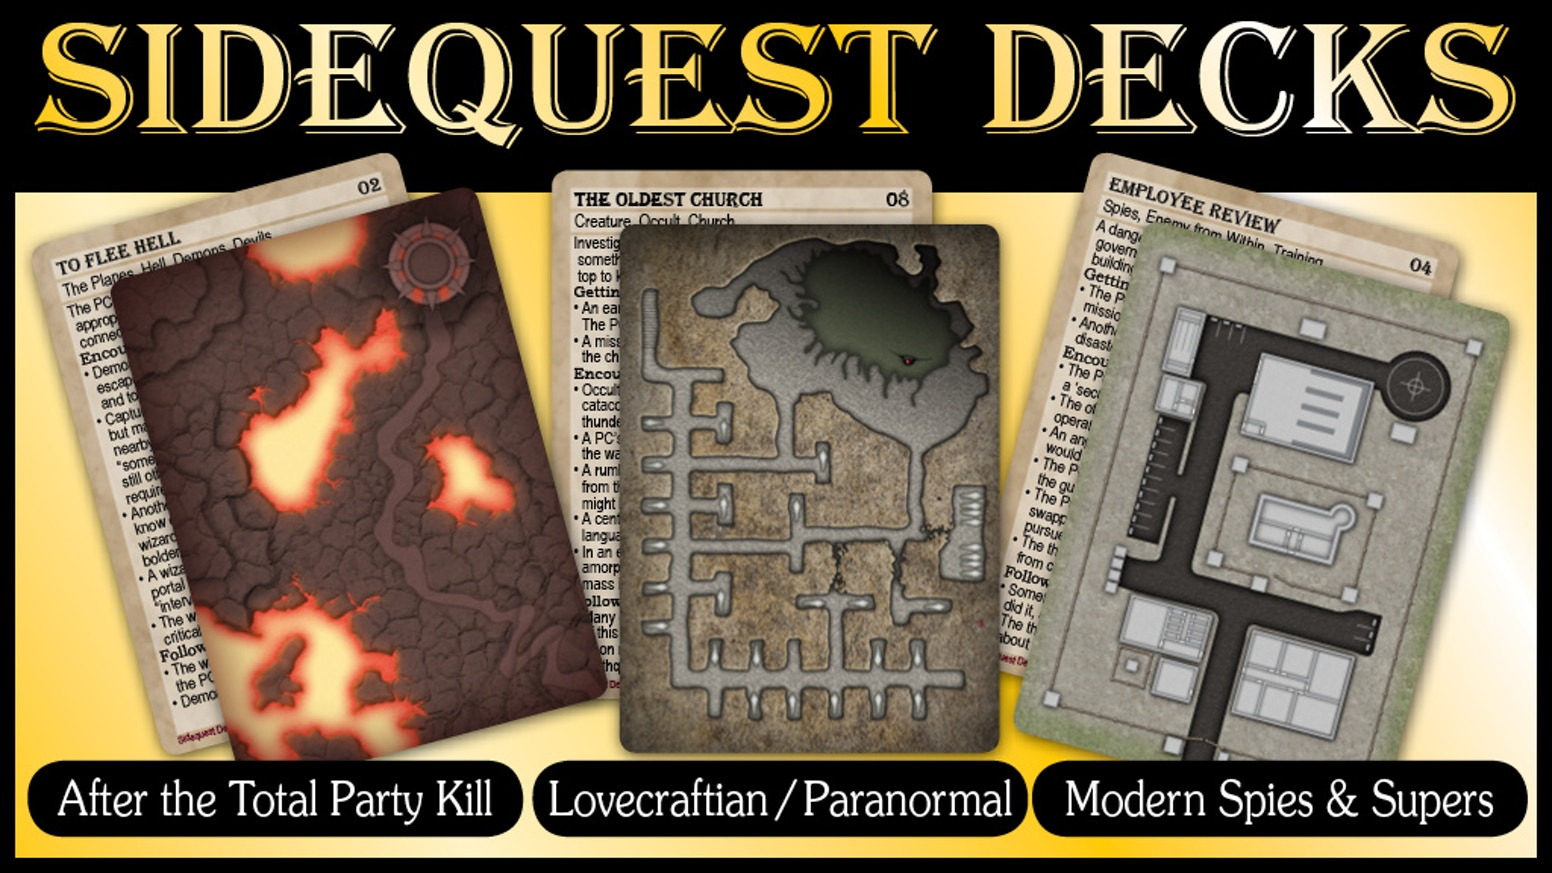 More Sidequest Decks! Each card is a system neutral mini-adventure. One side is the main map, the other is the adventure outline.